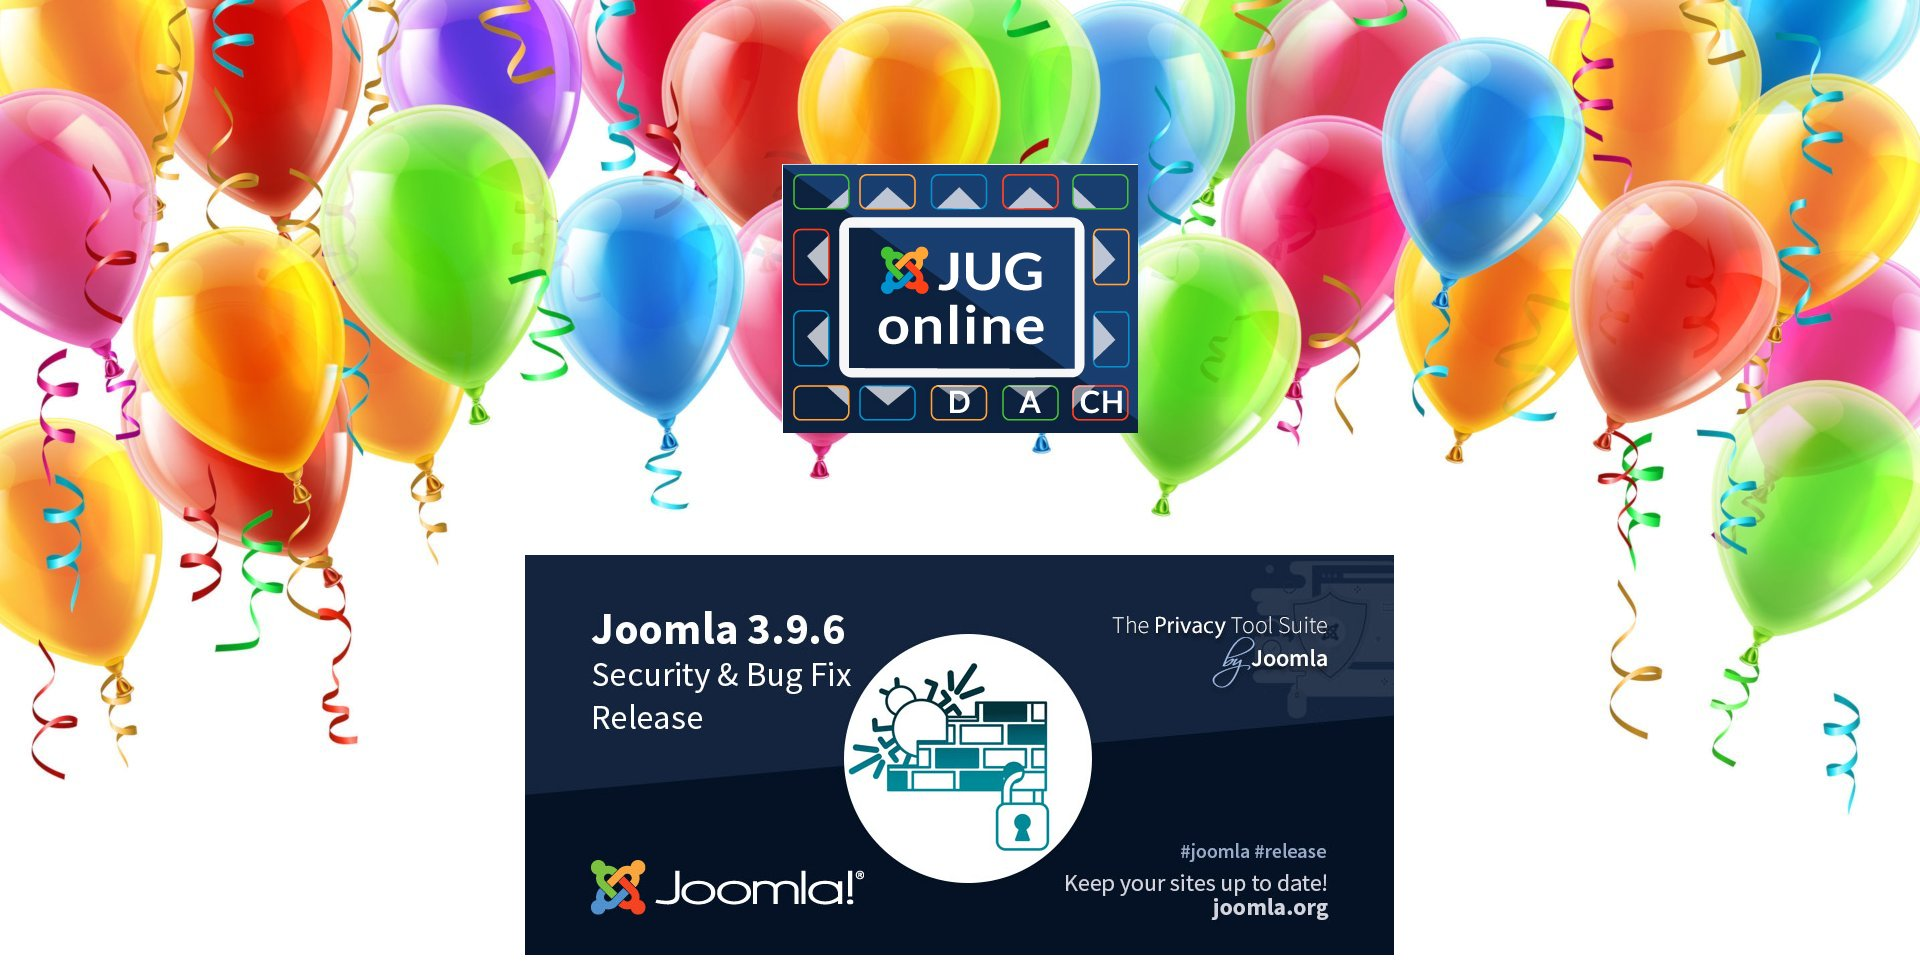 20 Years Medialekt - 20% Discount - JUG Talk & Joomla Update